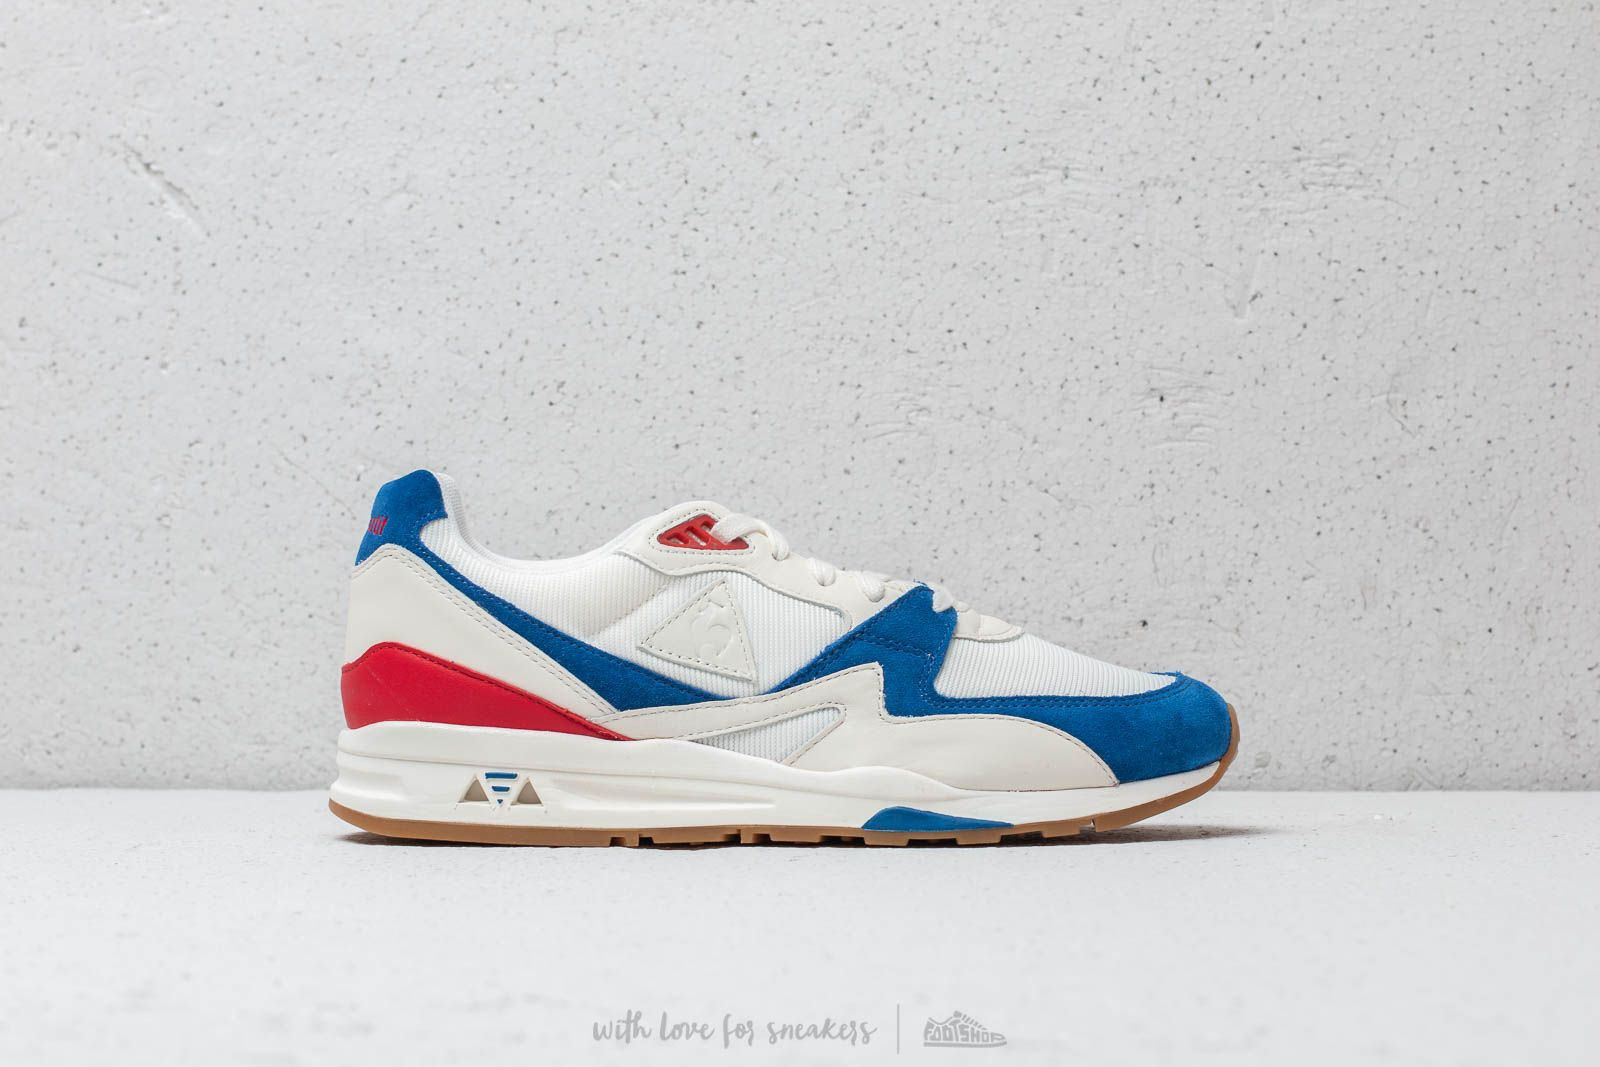 f95afaee6fb0 Le Coq Sportif LCS R800 BBR Marshmallow at a great price 143 € buy at  Footshop